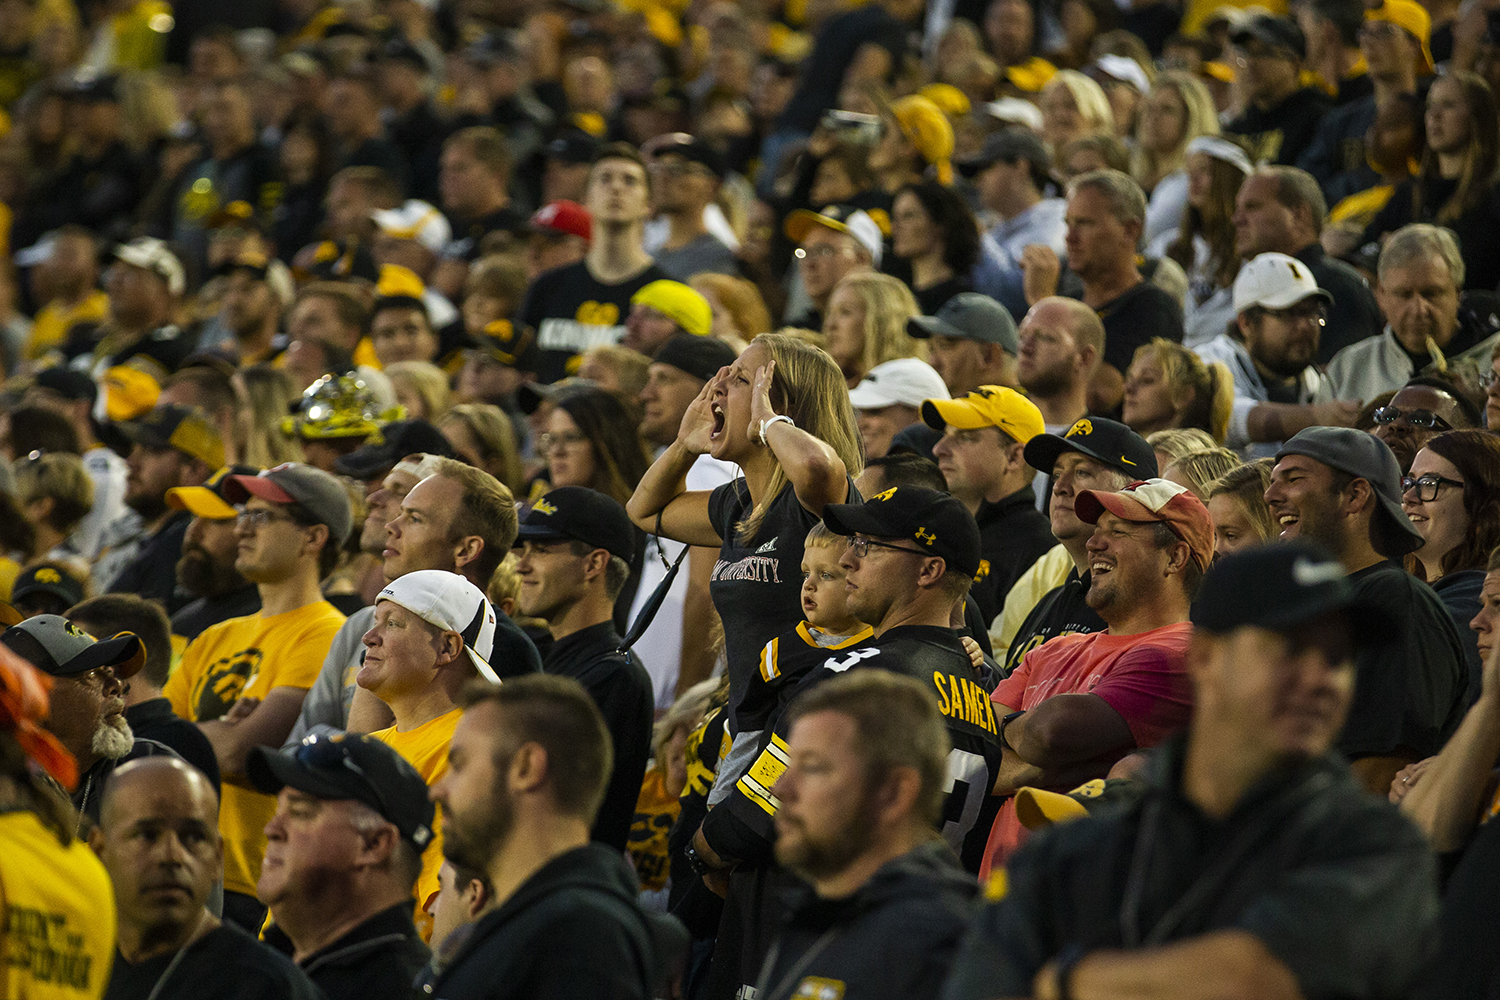 A+fan+reacts+to+a+play+during+the+Iowa+football+game+against+Miami+%28Ohio%29+at+Kinnick+Stadium+on+Saturday%2C+August+31%2C+2019.+The+Hawkeyes+defeated+the+Redhawks+38-14.